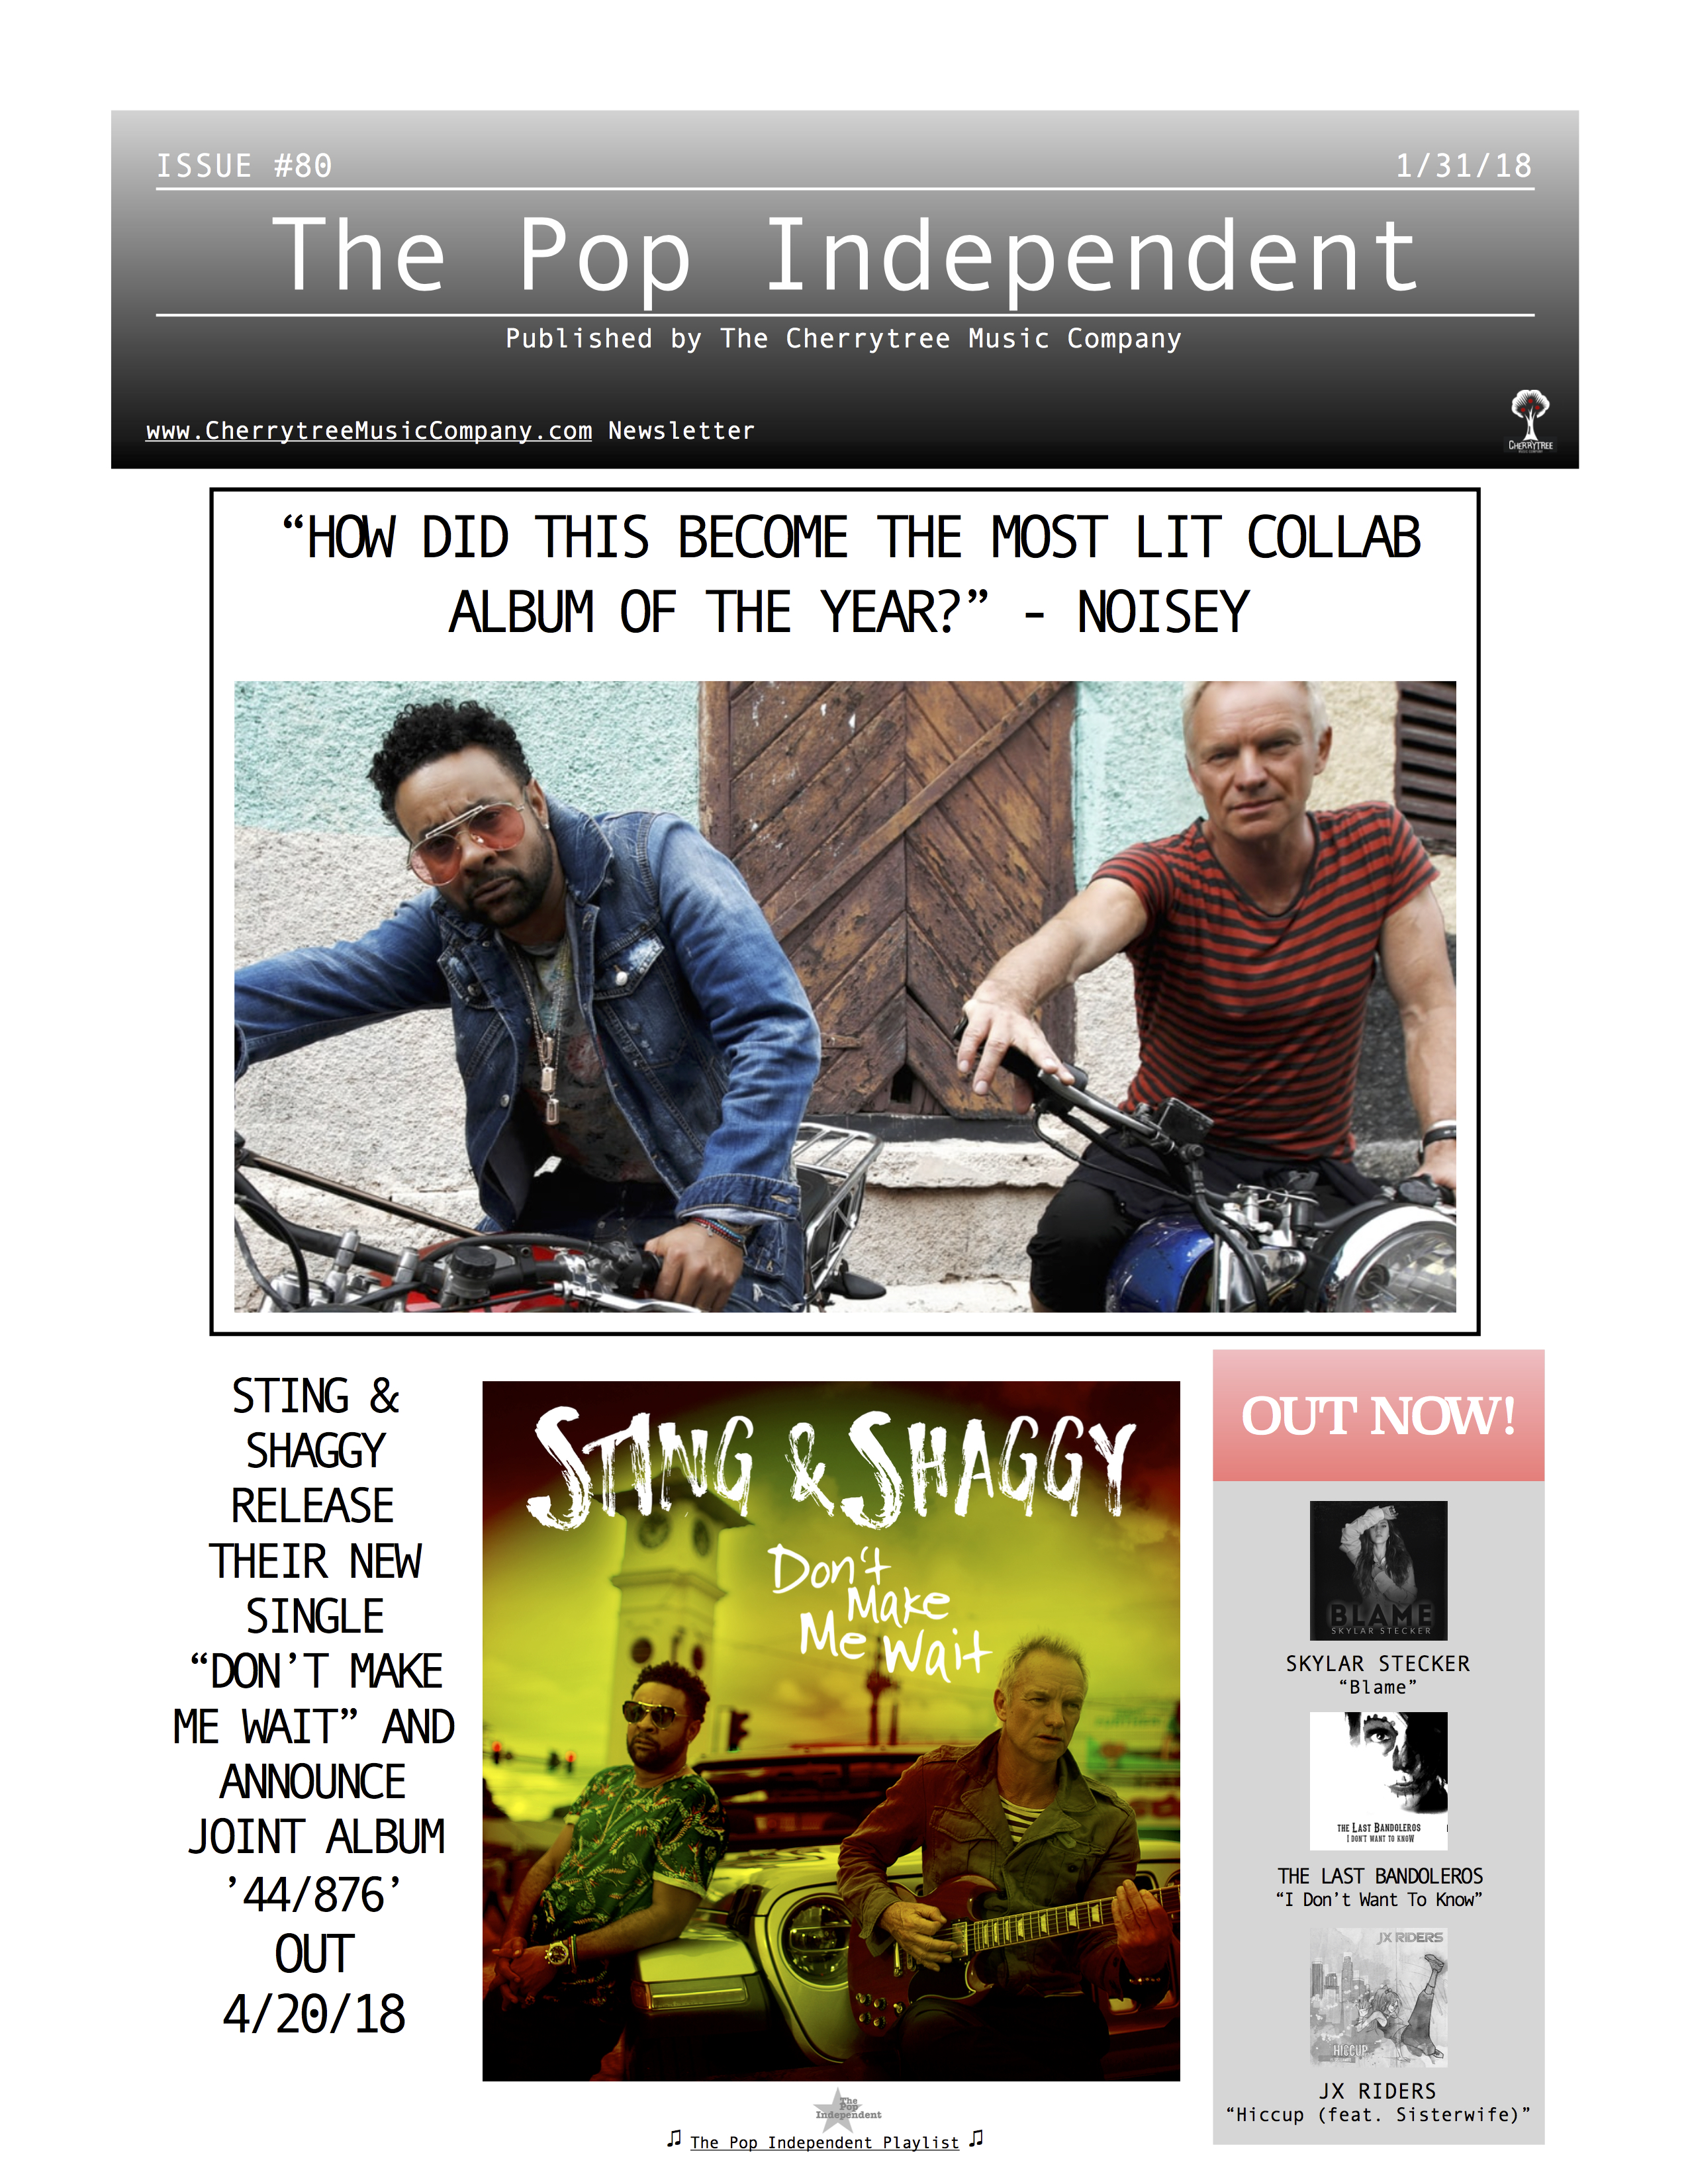 The Pop Independent, issue 80